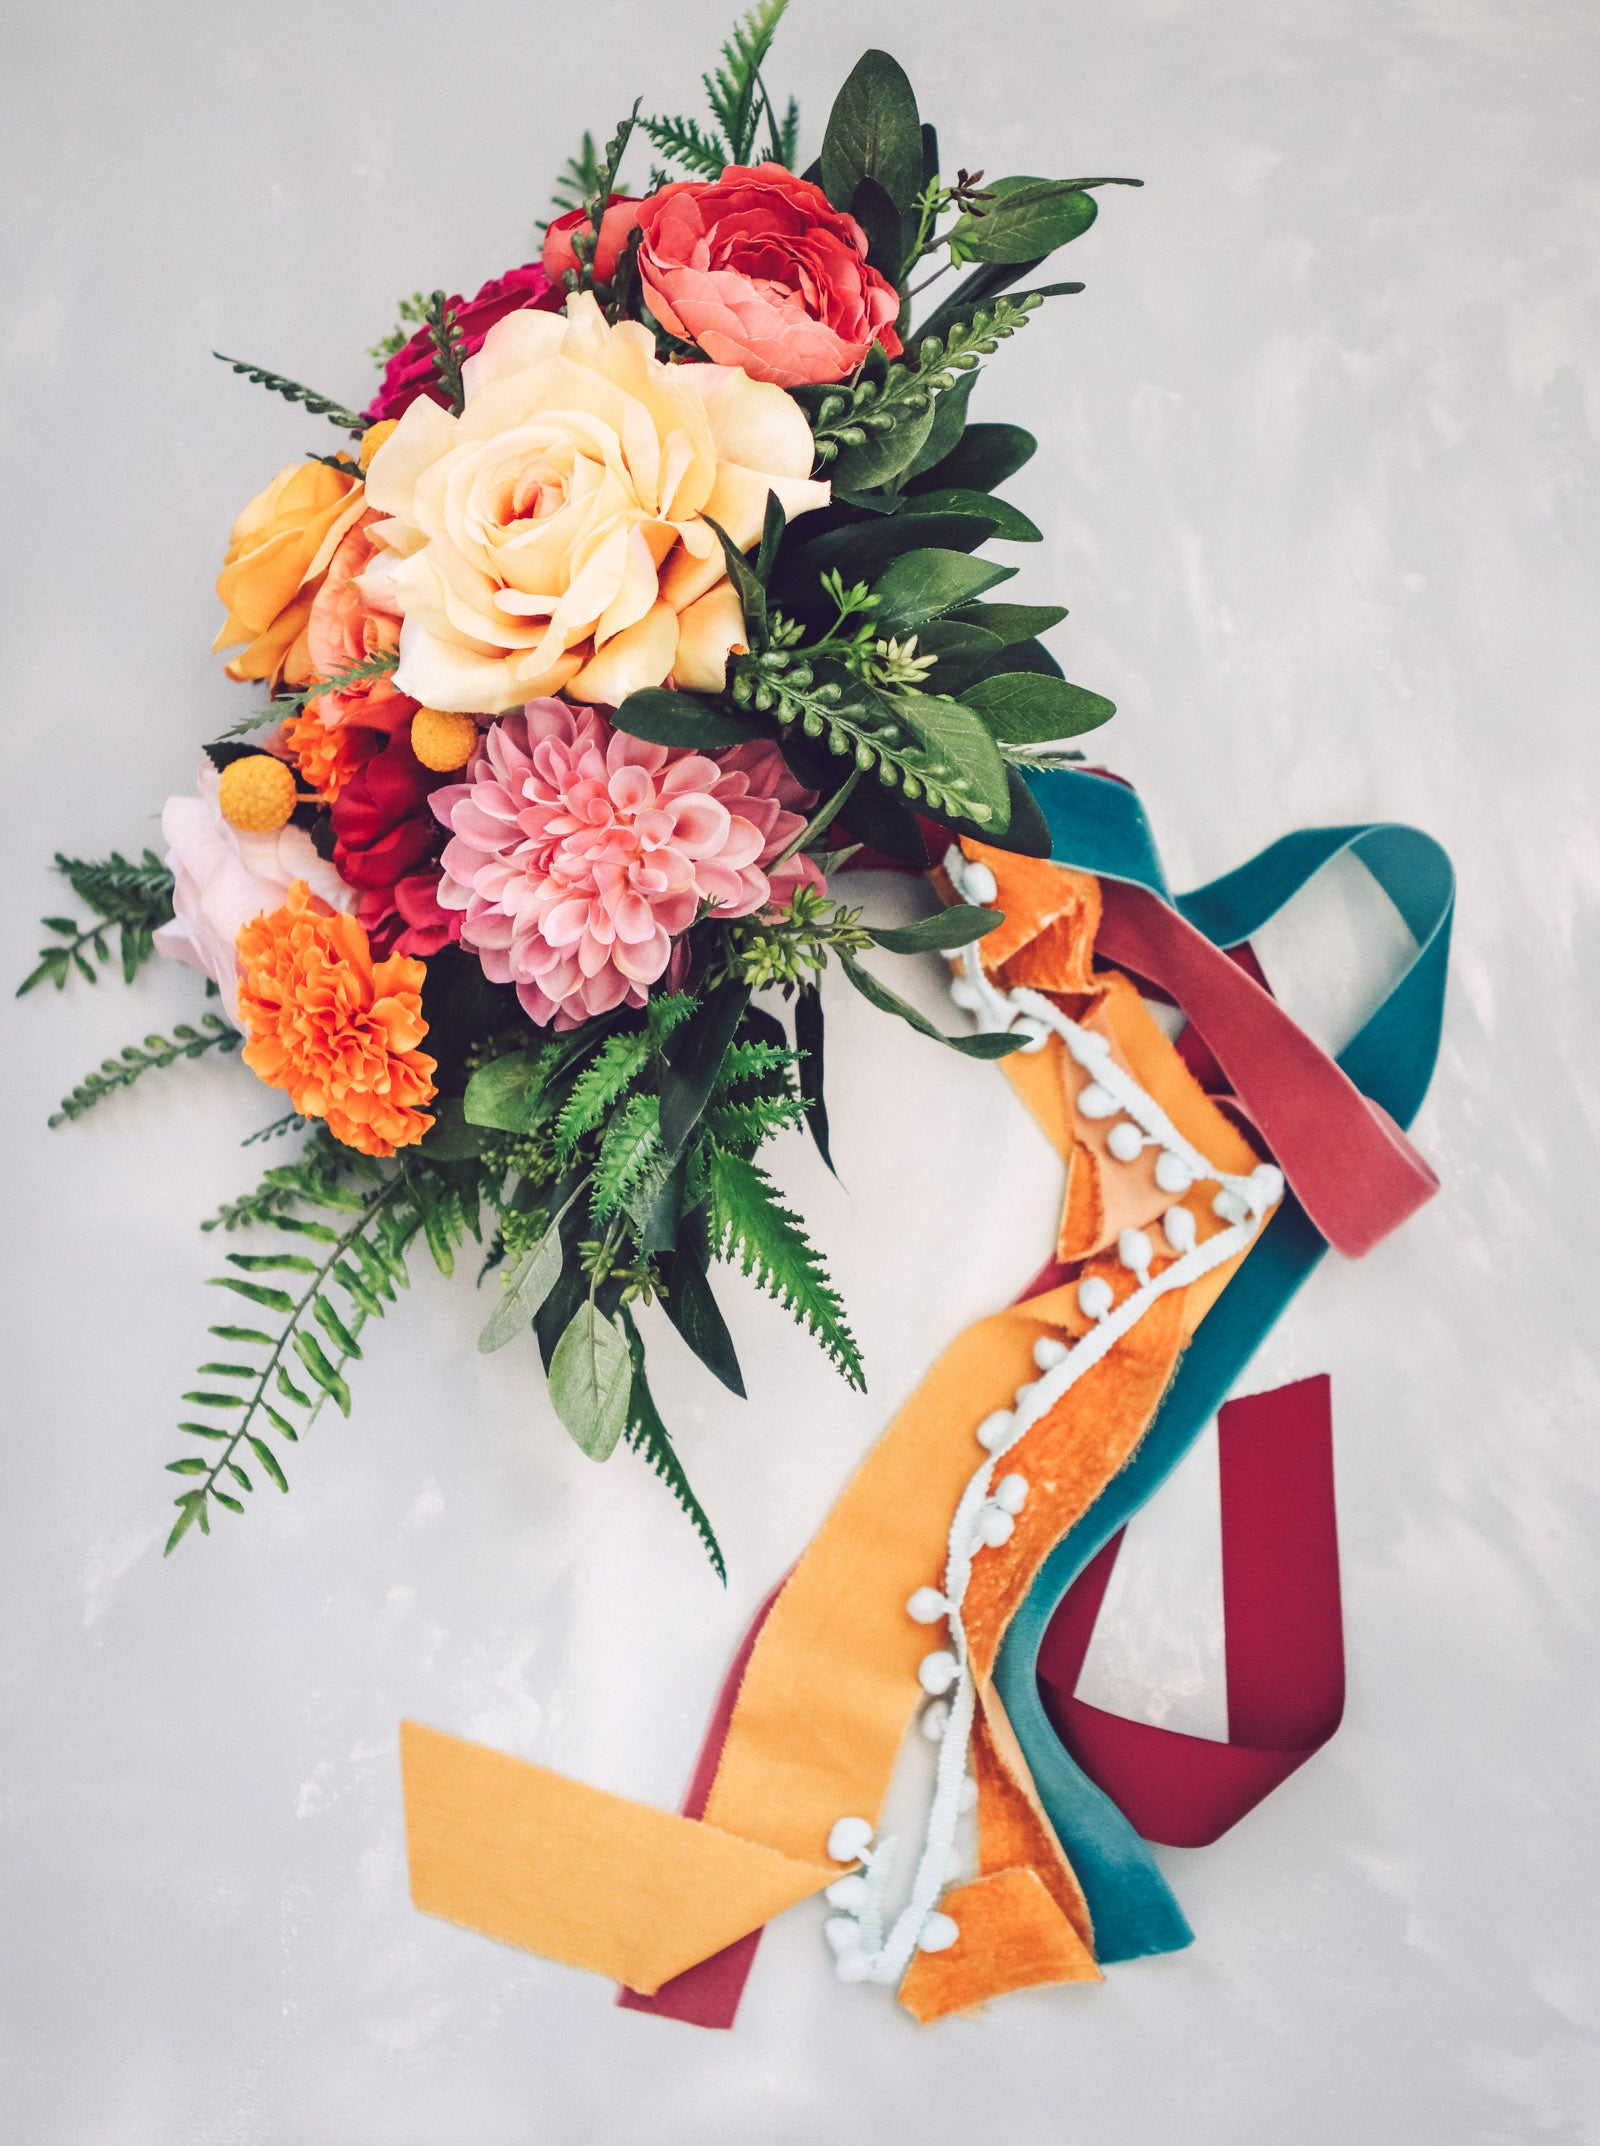 Add. of Streaming Ribbons to Bouquet - Swiss Velvet